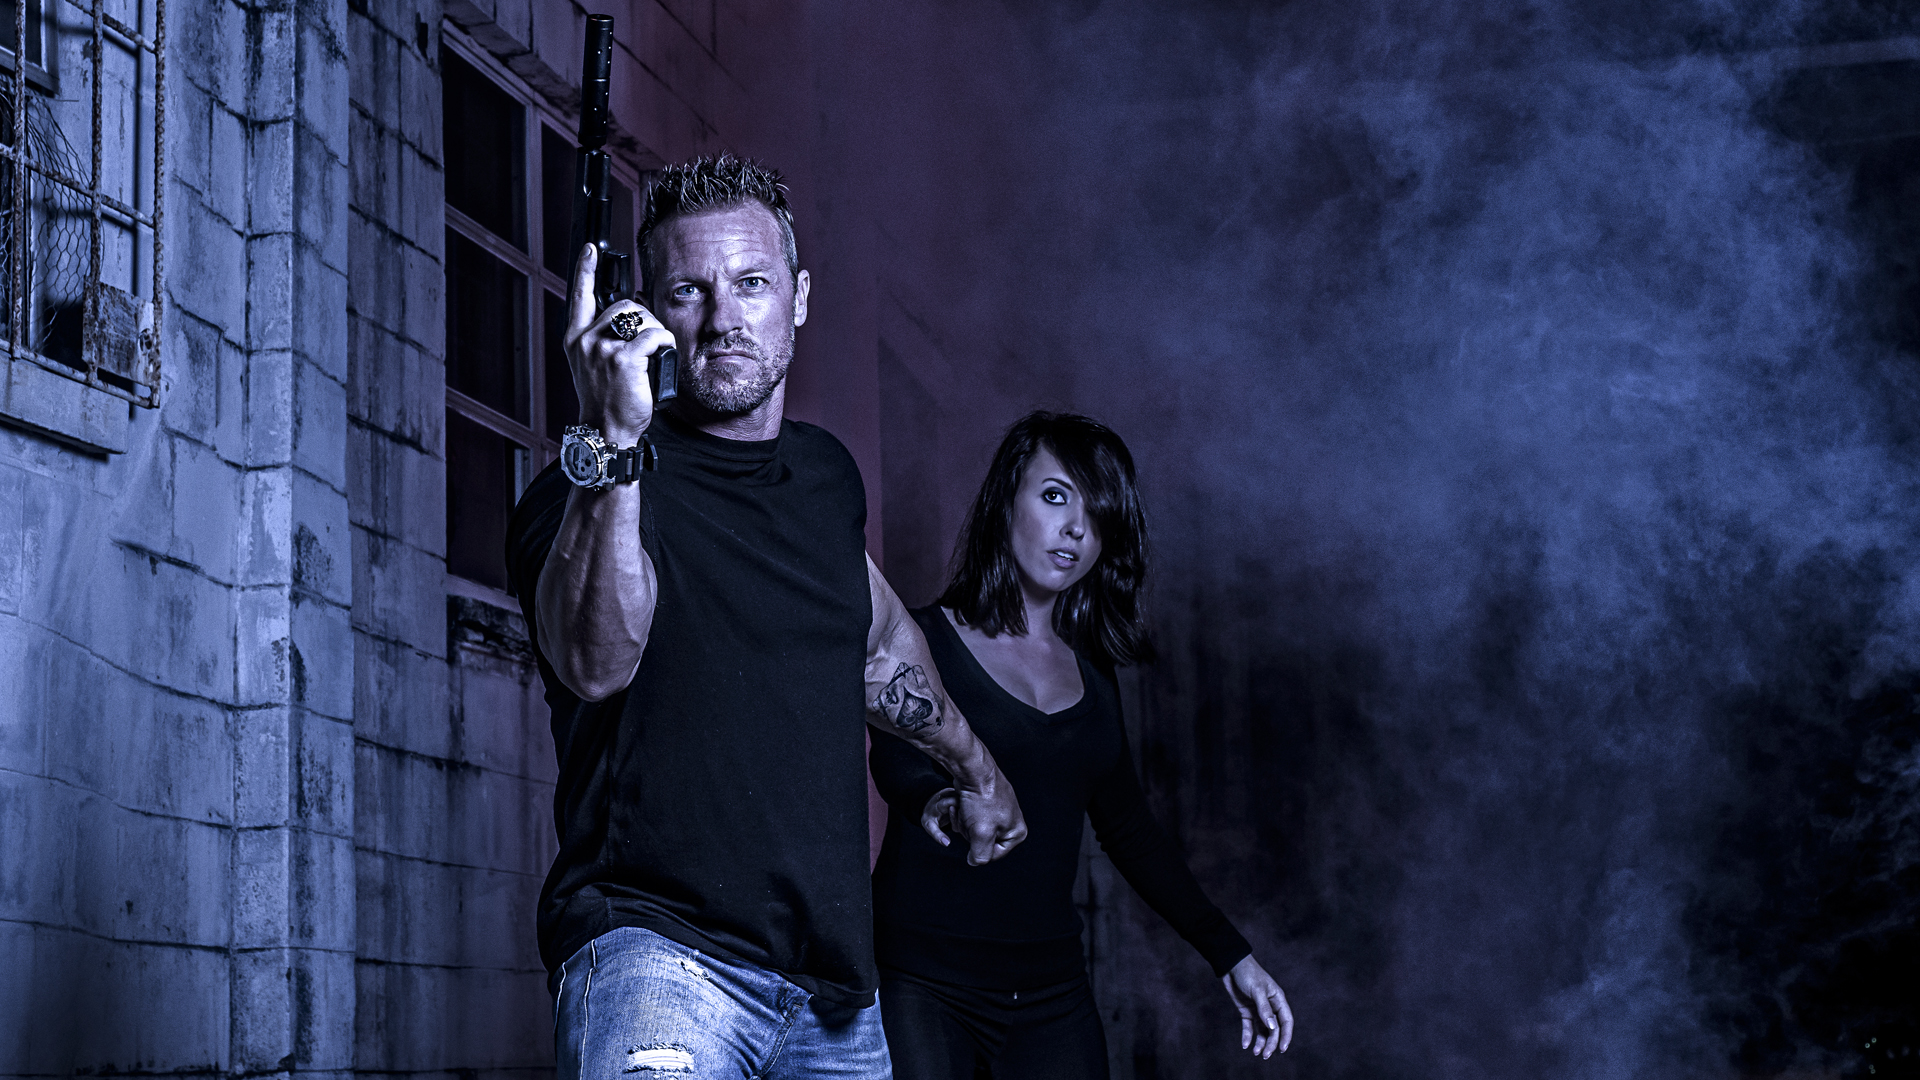 featured- How to create an action portrait in an alley